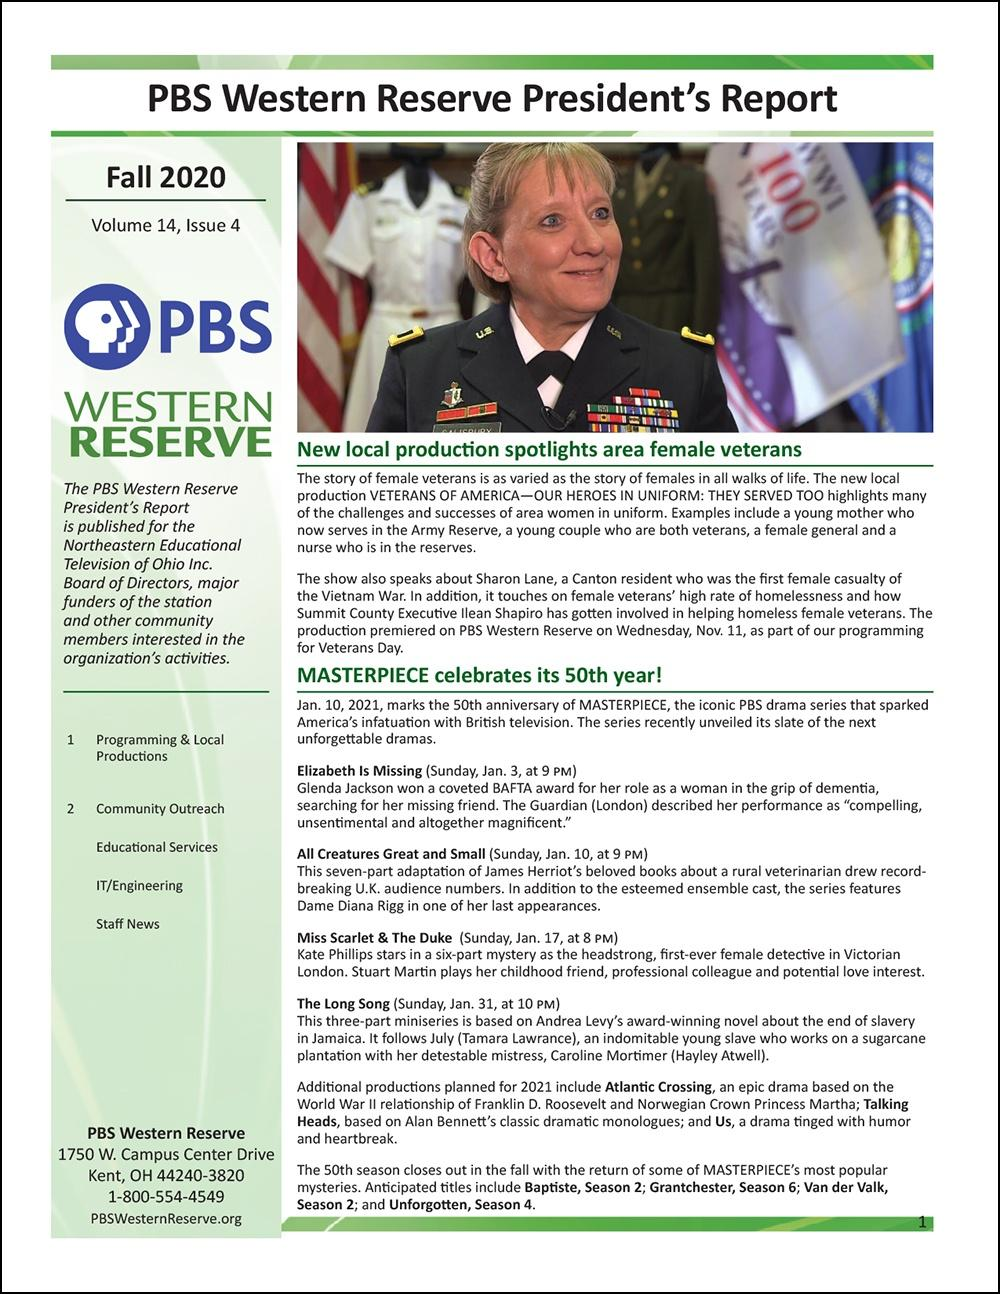 President's Report - Fall 2020 - Volume 14, Issue 4